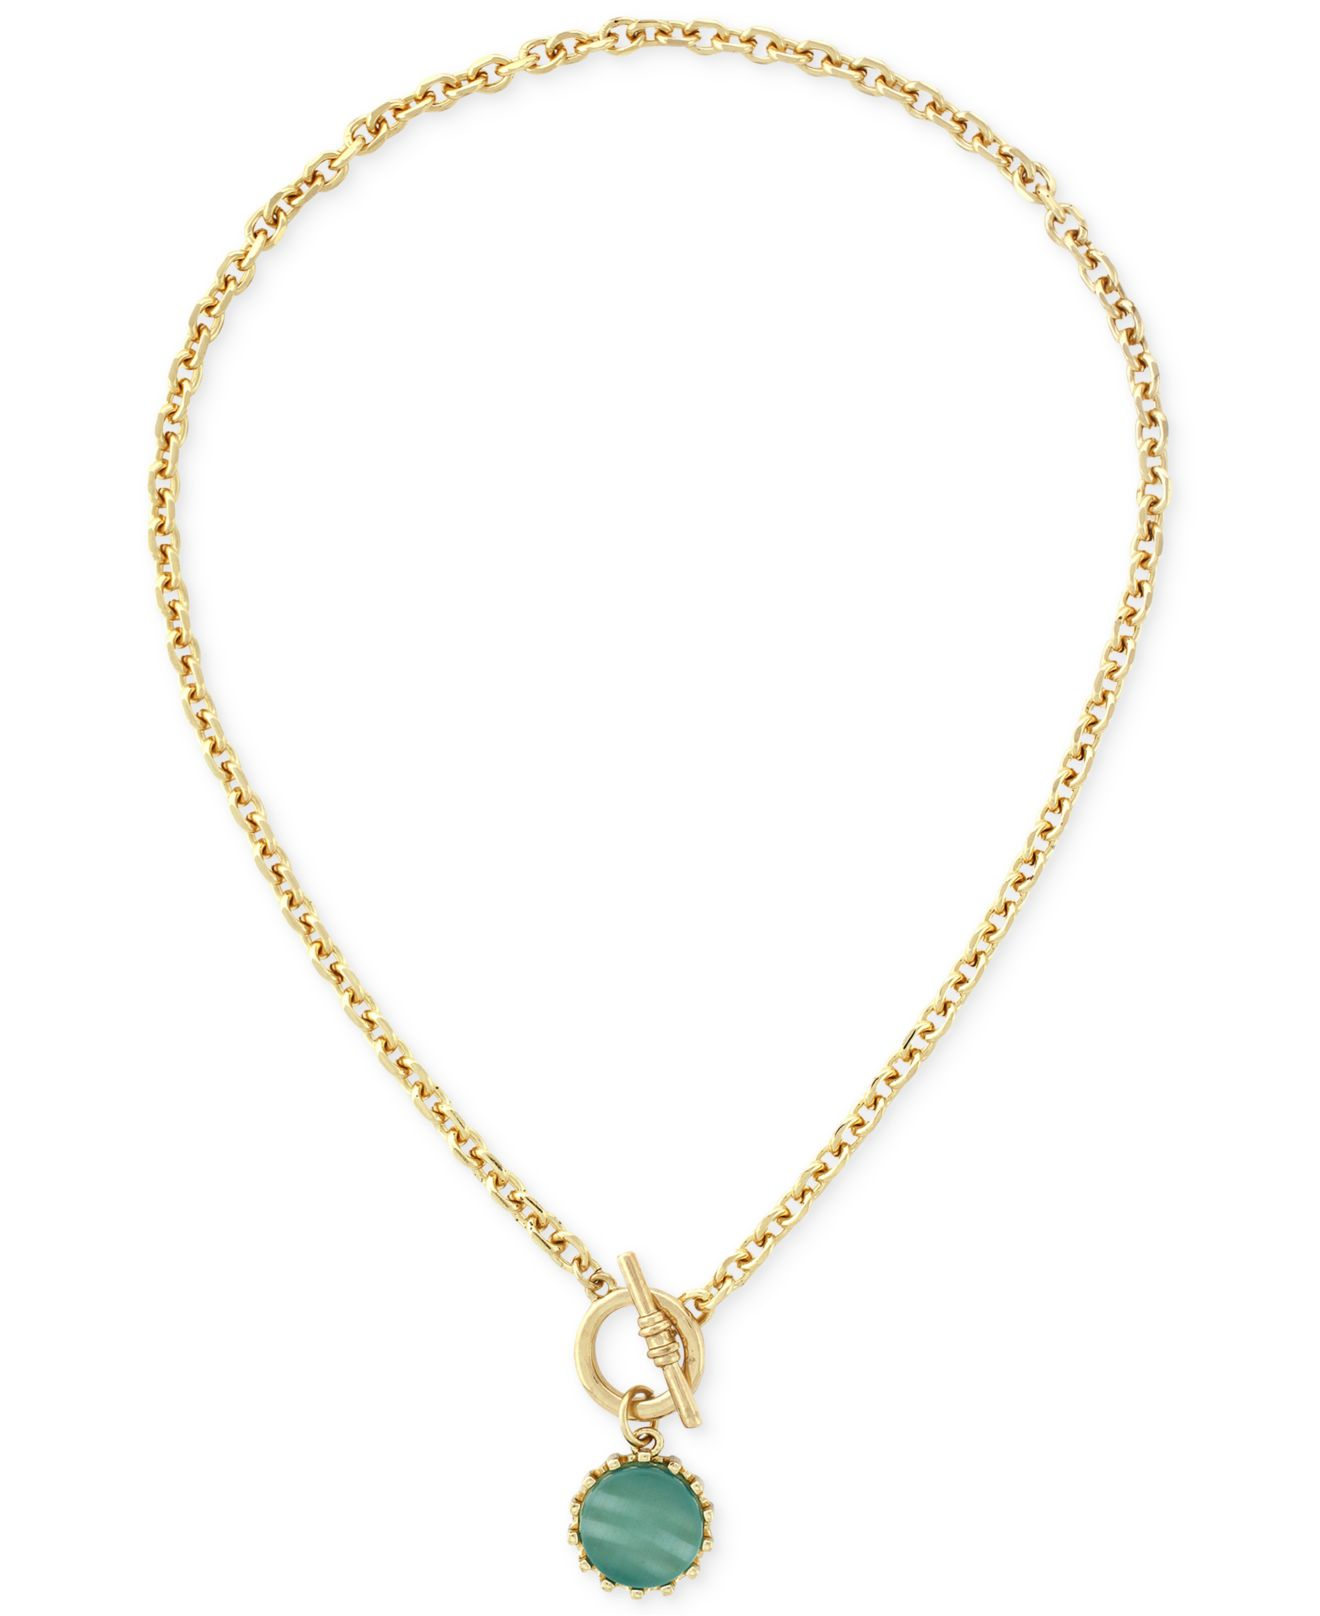 BCBGeneration Chain-Link Stone Necklace WU7bsMf6Wv